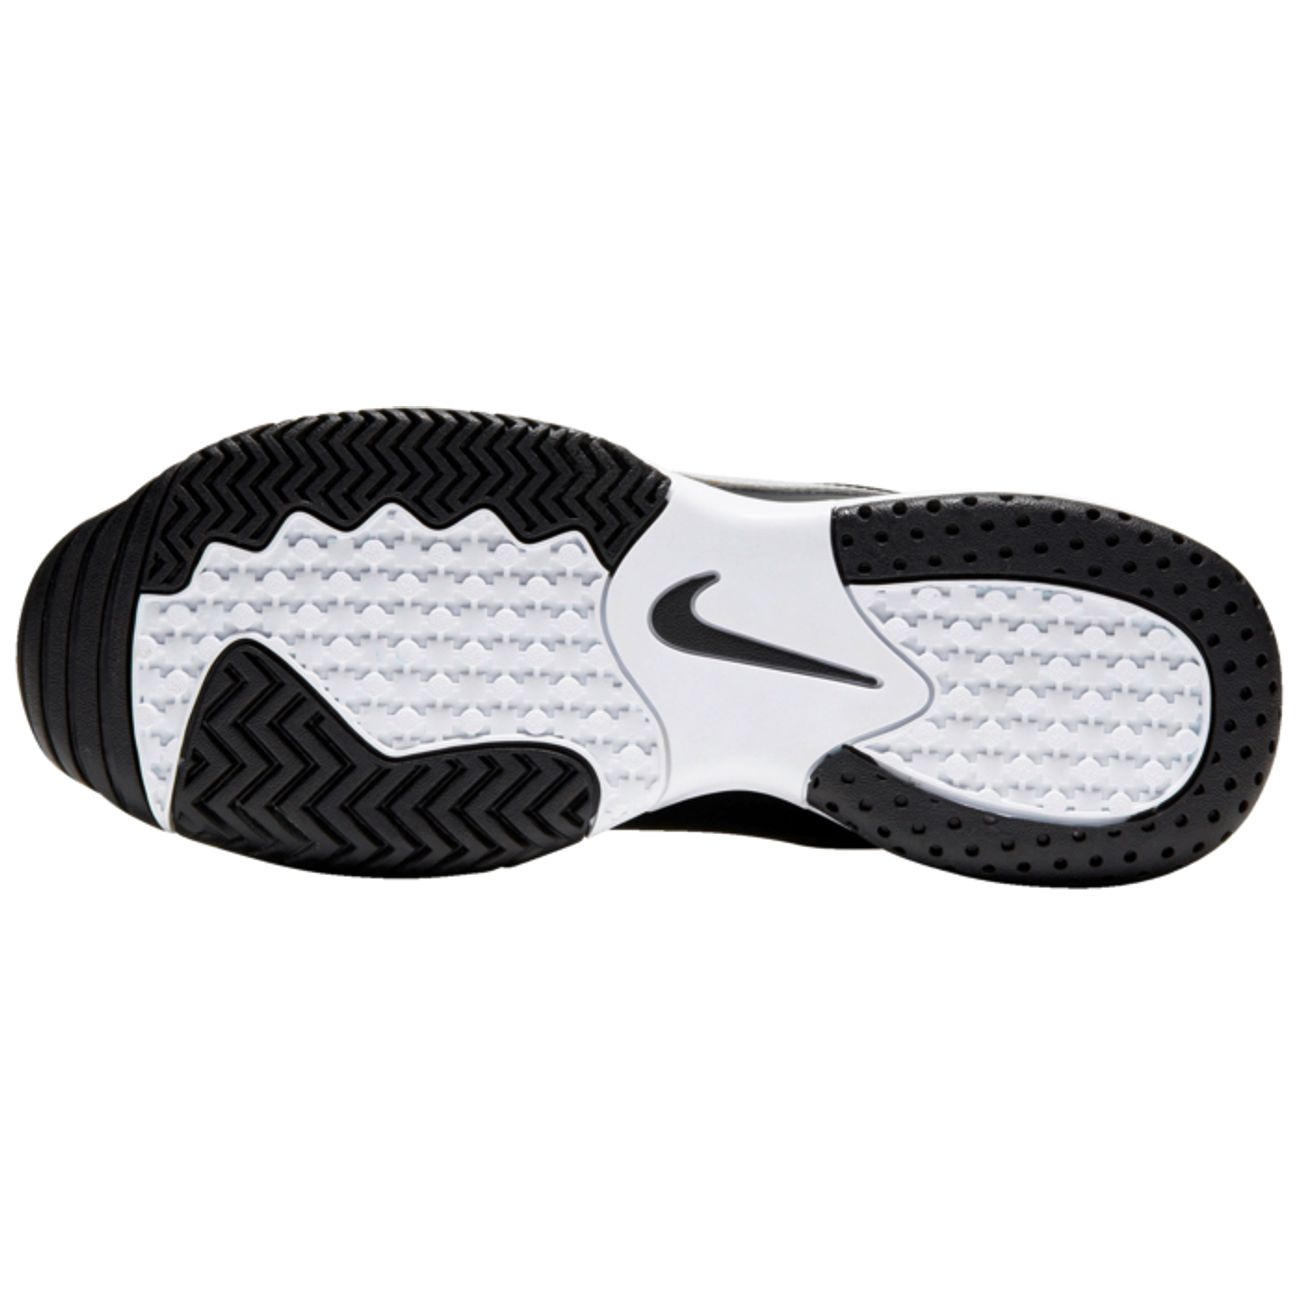 CHAUSSURES BASSES Tennis homme NIKE NIKE COURT LITE 2